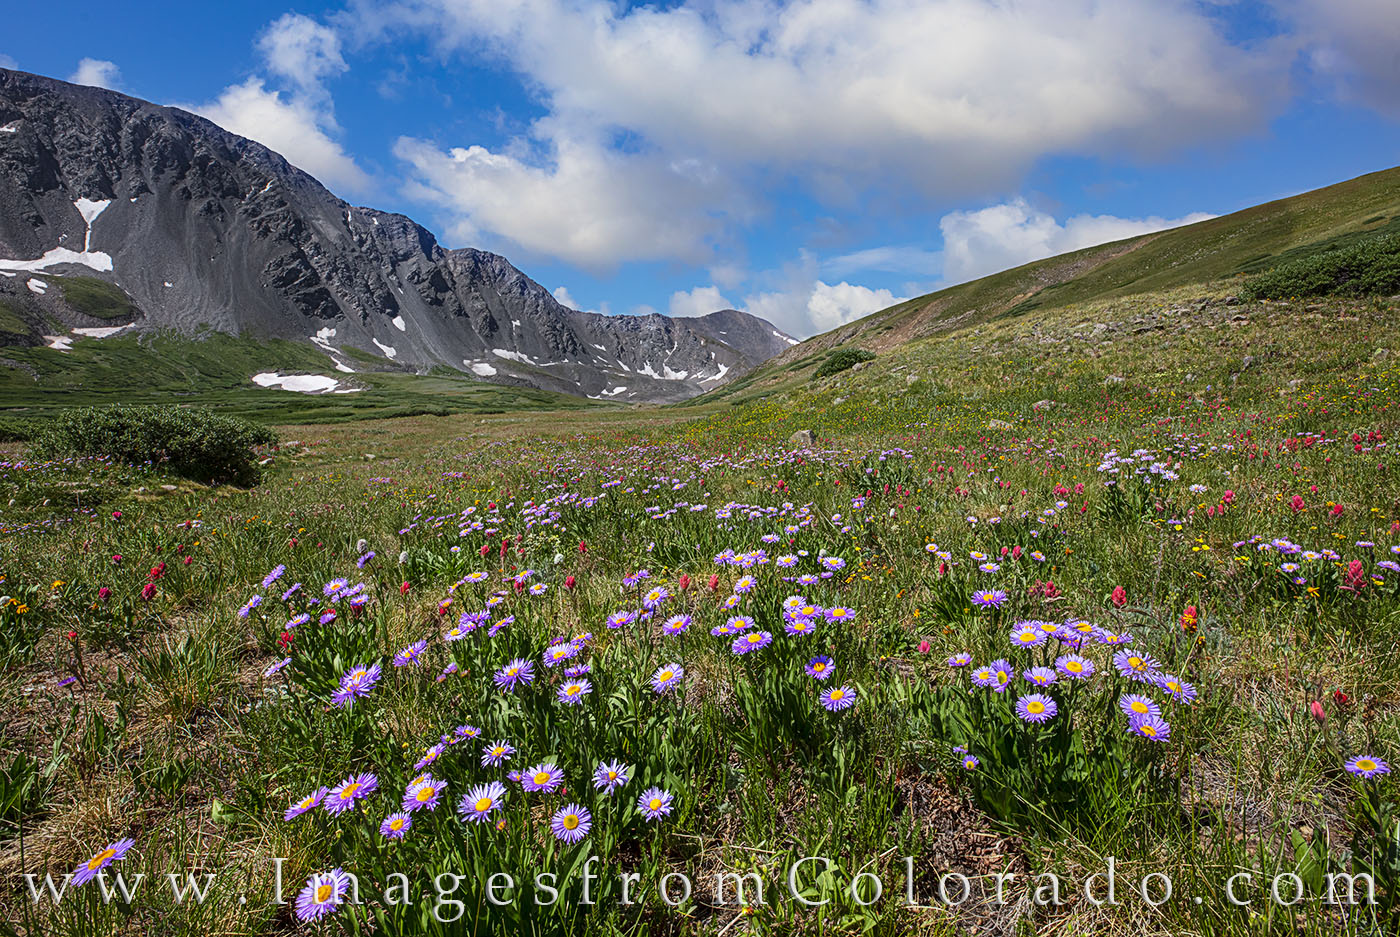 wildflowers, grays peak, stevens gulch, hiking, colorado hiking, 14ers, Grays peak trail, torreys peak trail, colorado wildflowers, summer, afternoon paintbrush, daisies, photo